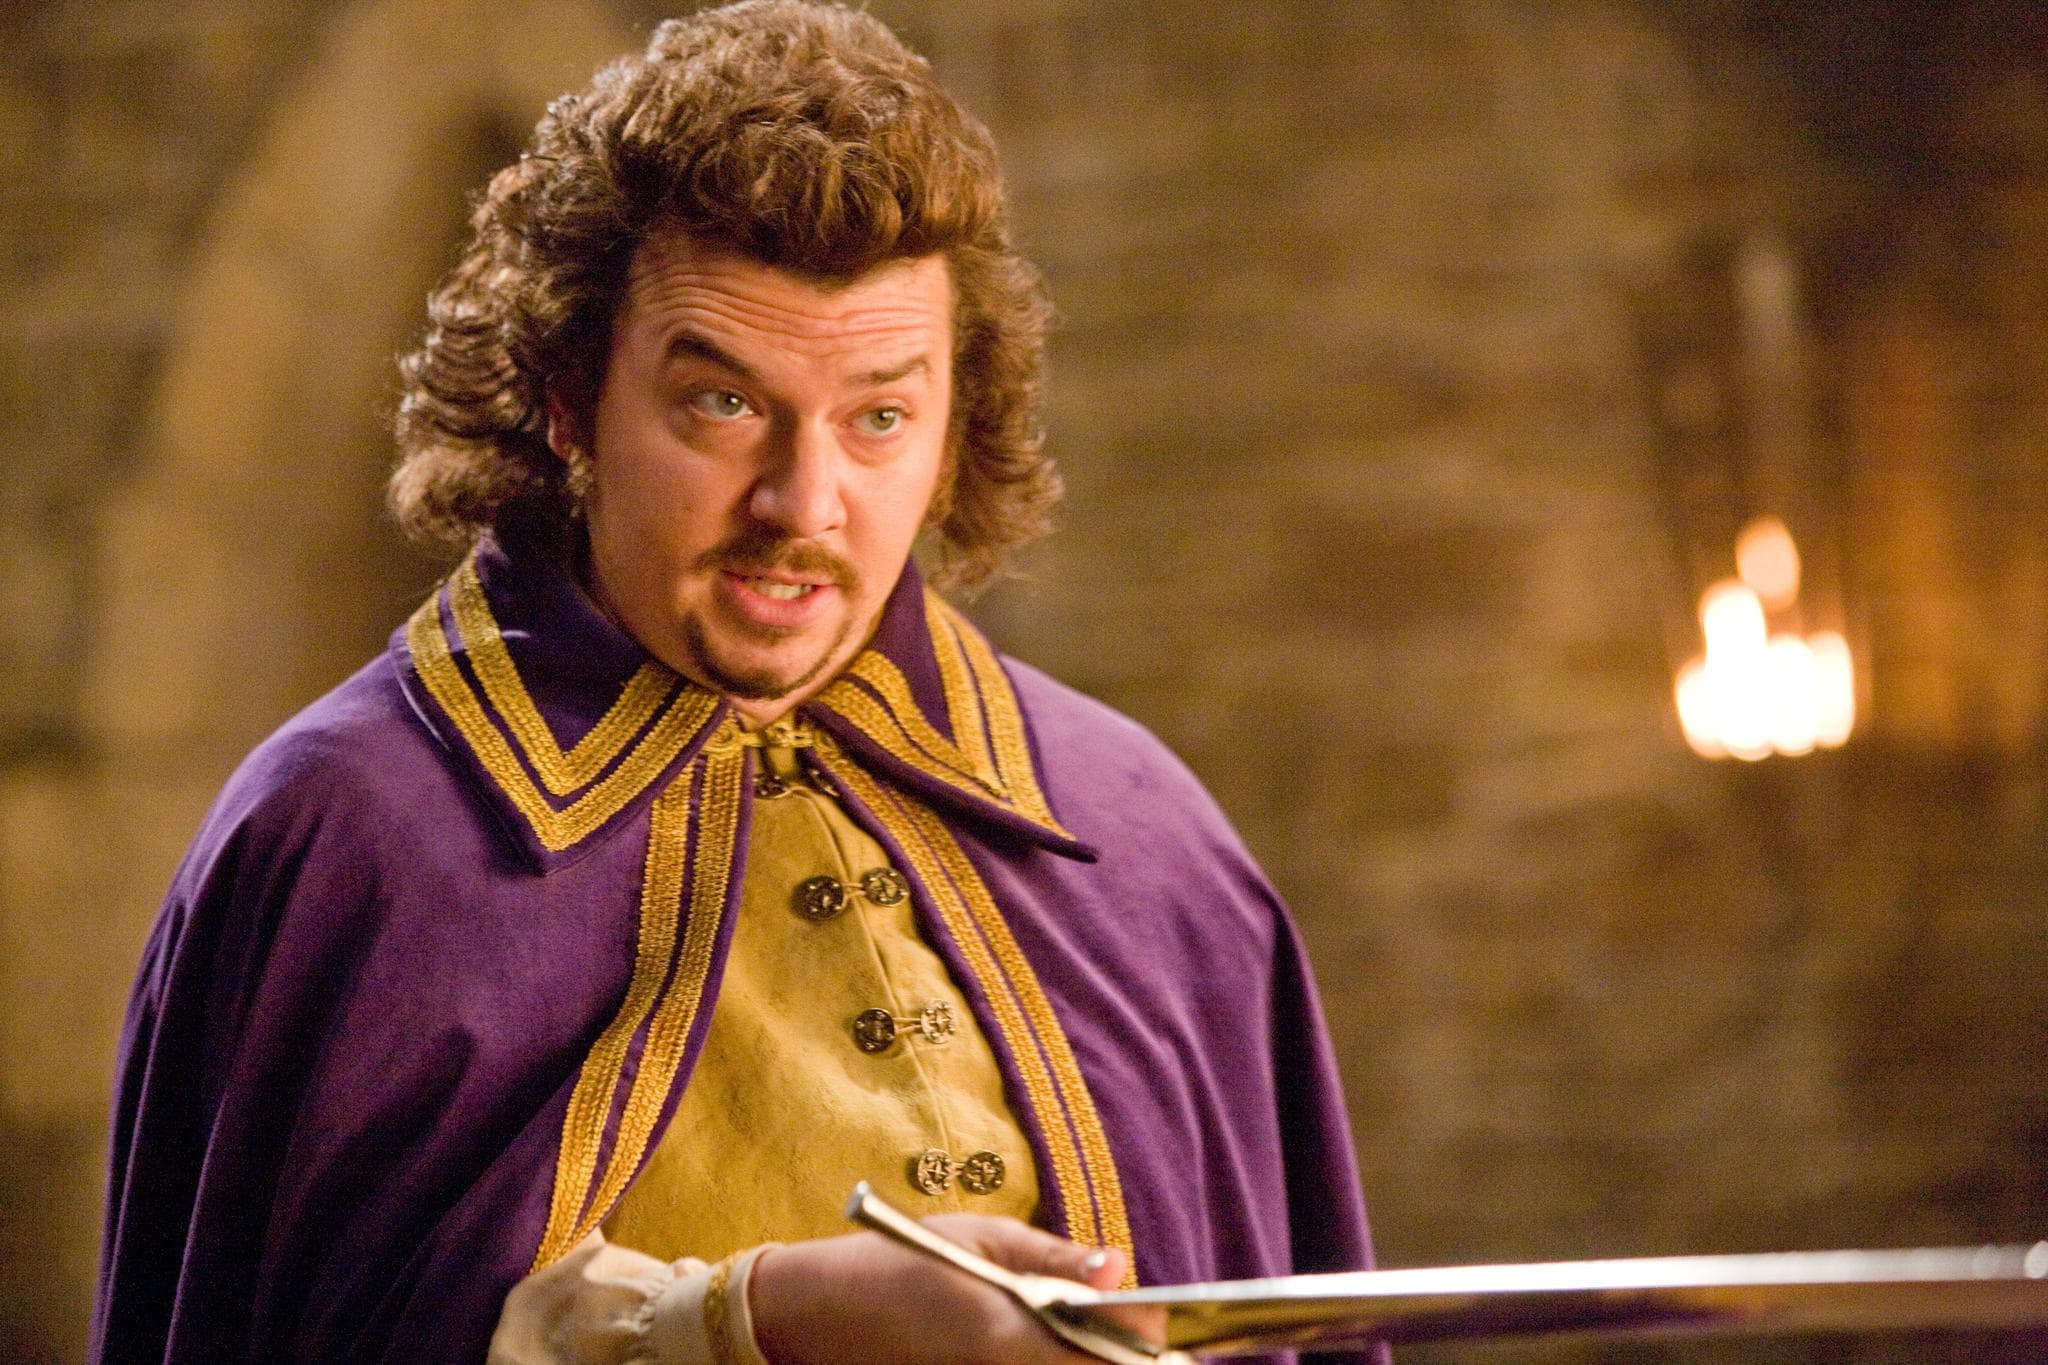 Danny Mcbride Wallpapers hd